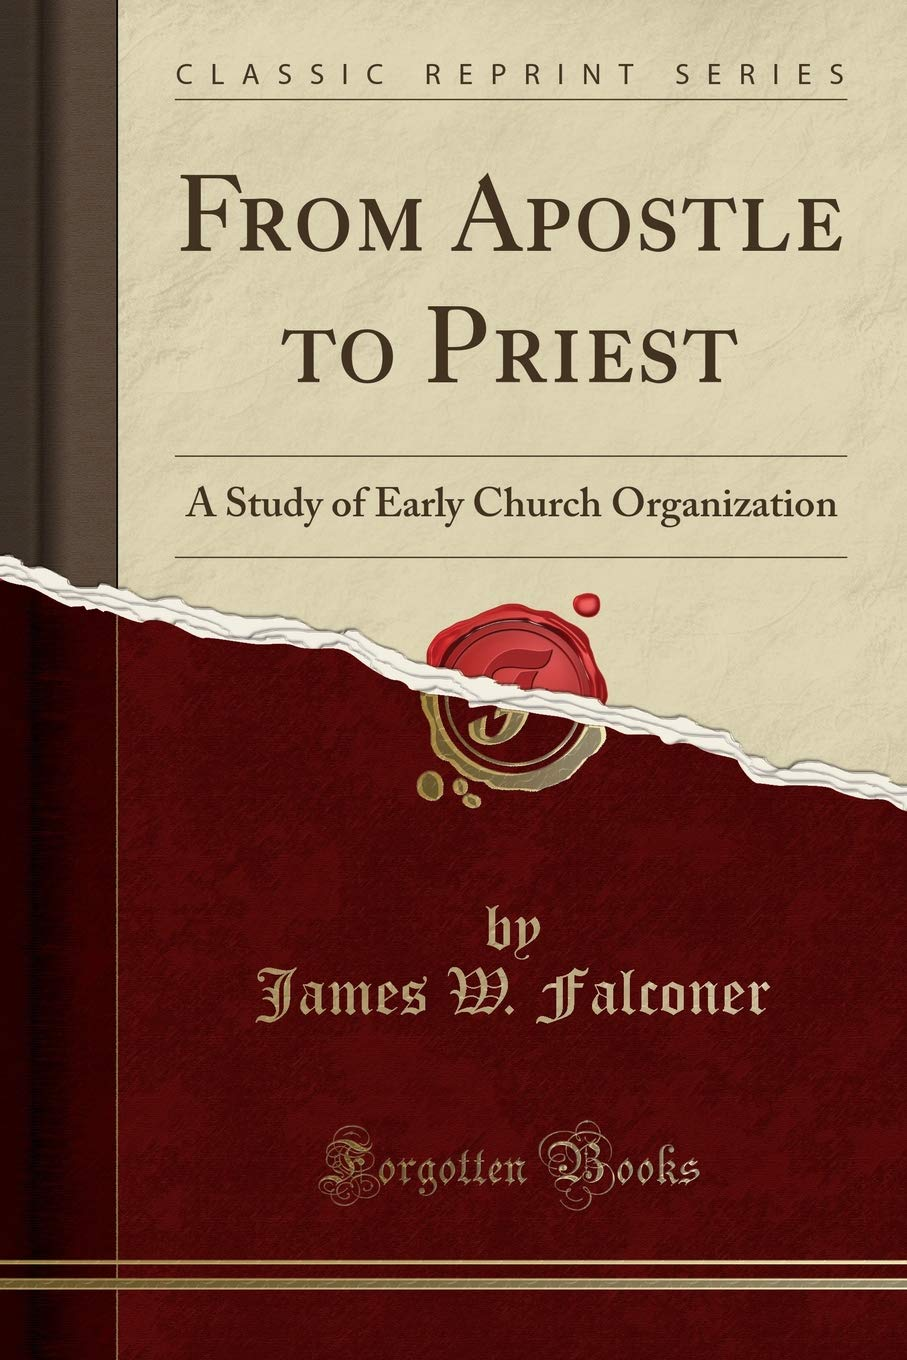 From Apostle to Priest: A Study of Early Church Organization (Classic Reprint) ebook